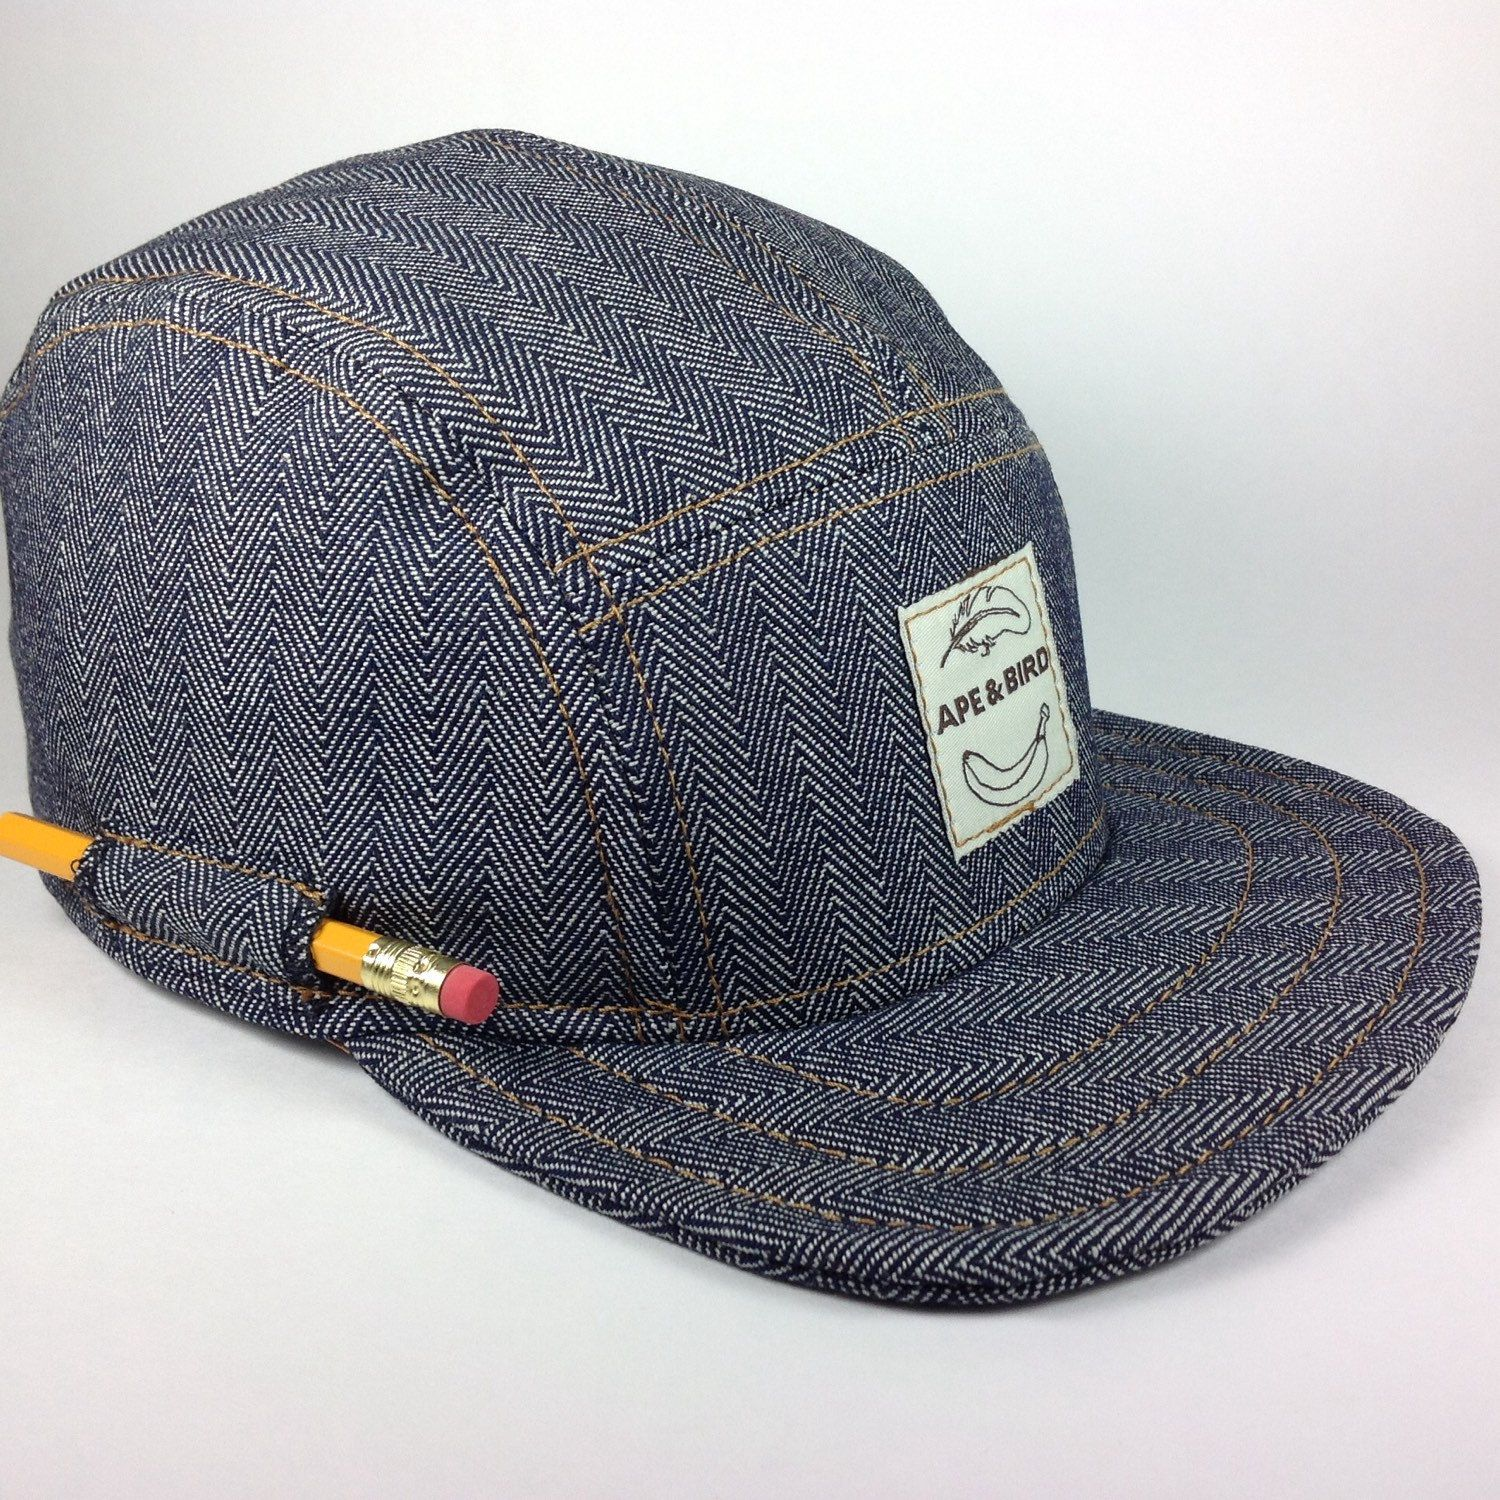 Handmade 5 panel cap. Indigo Herringbone Denim hat with PENCIL Pocket!  (45.00 USD) by ApeNBird cca75cadaa7